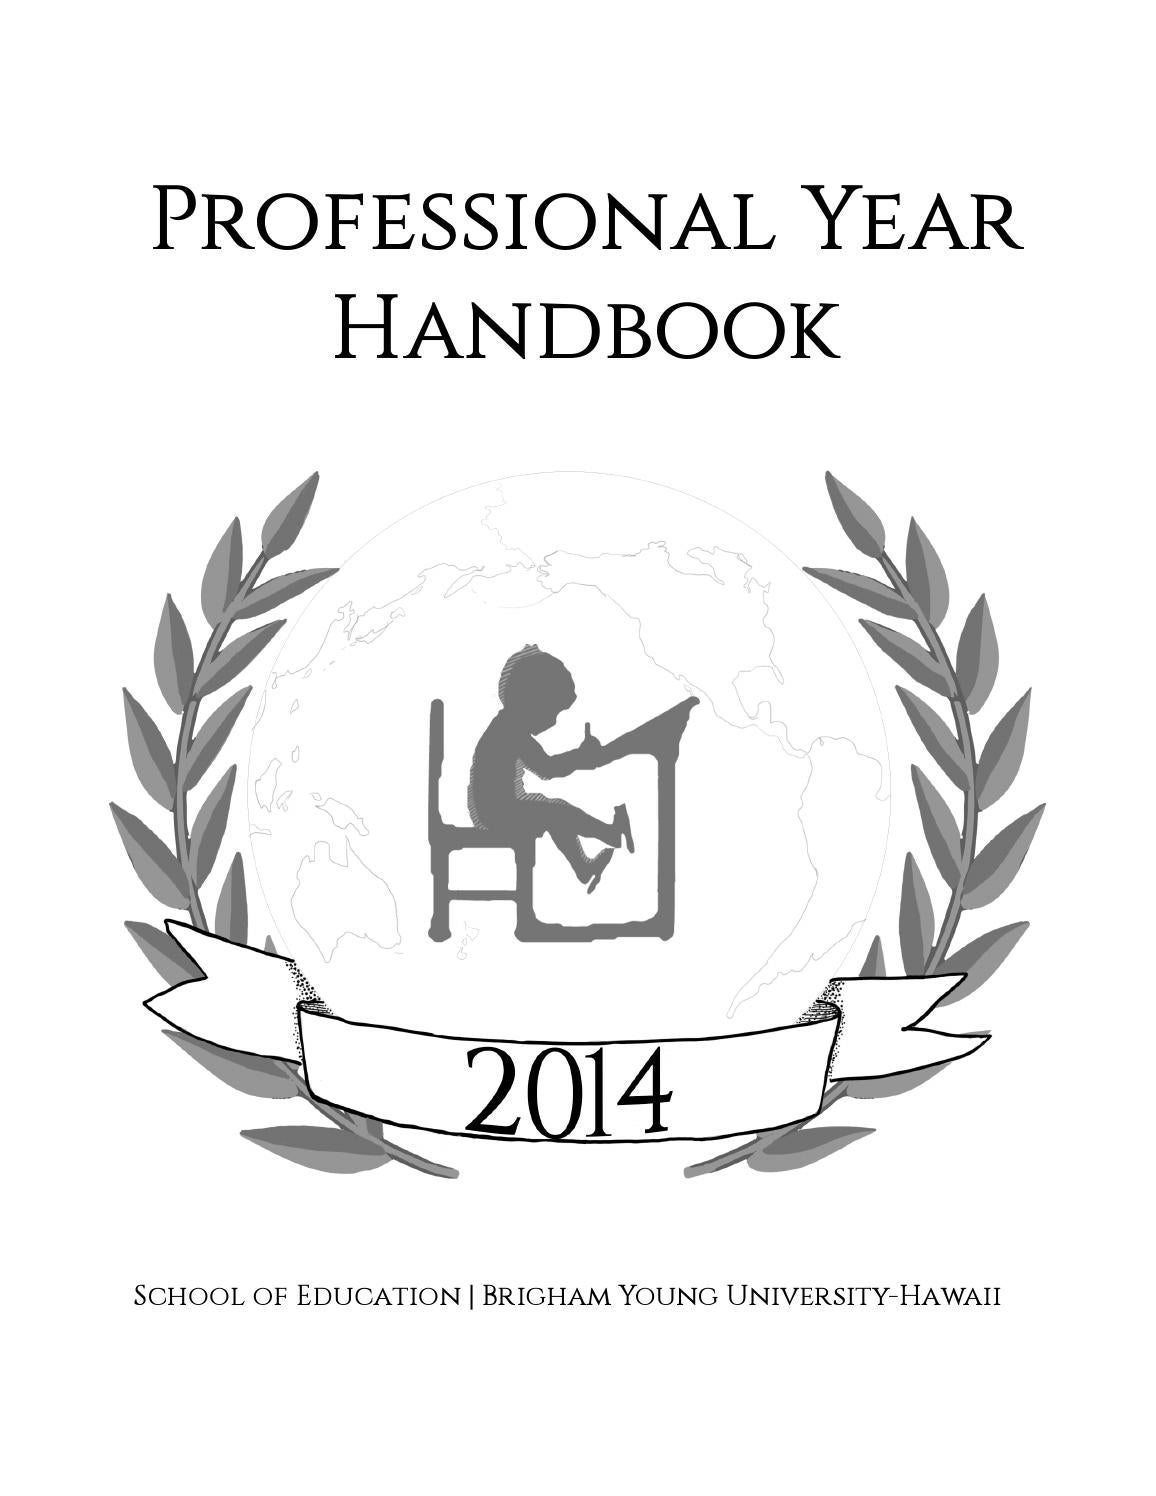 BYU-Hawaii School of Education Professional Year Handbook